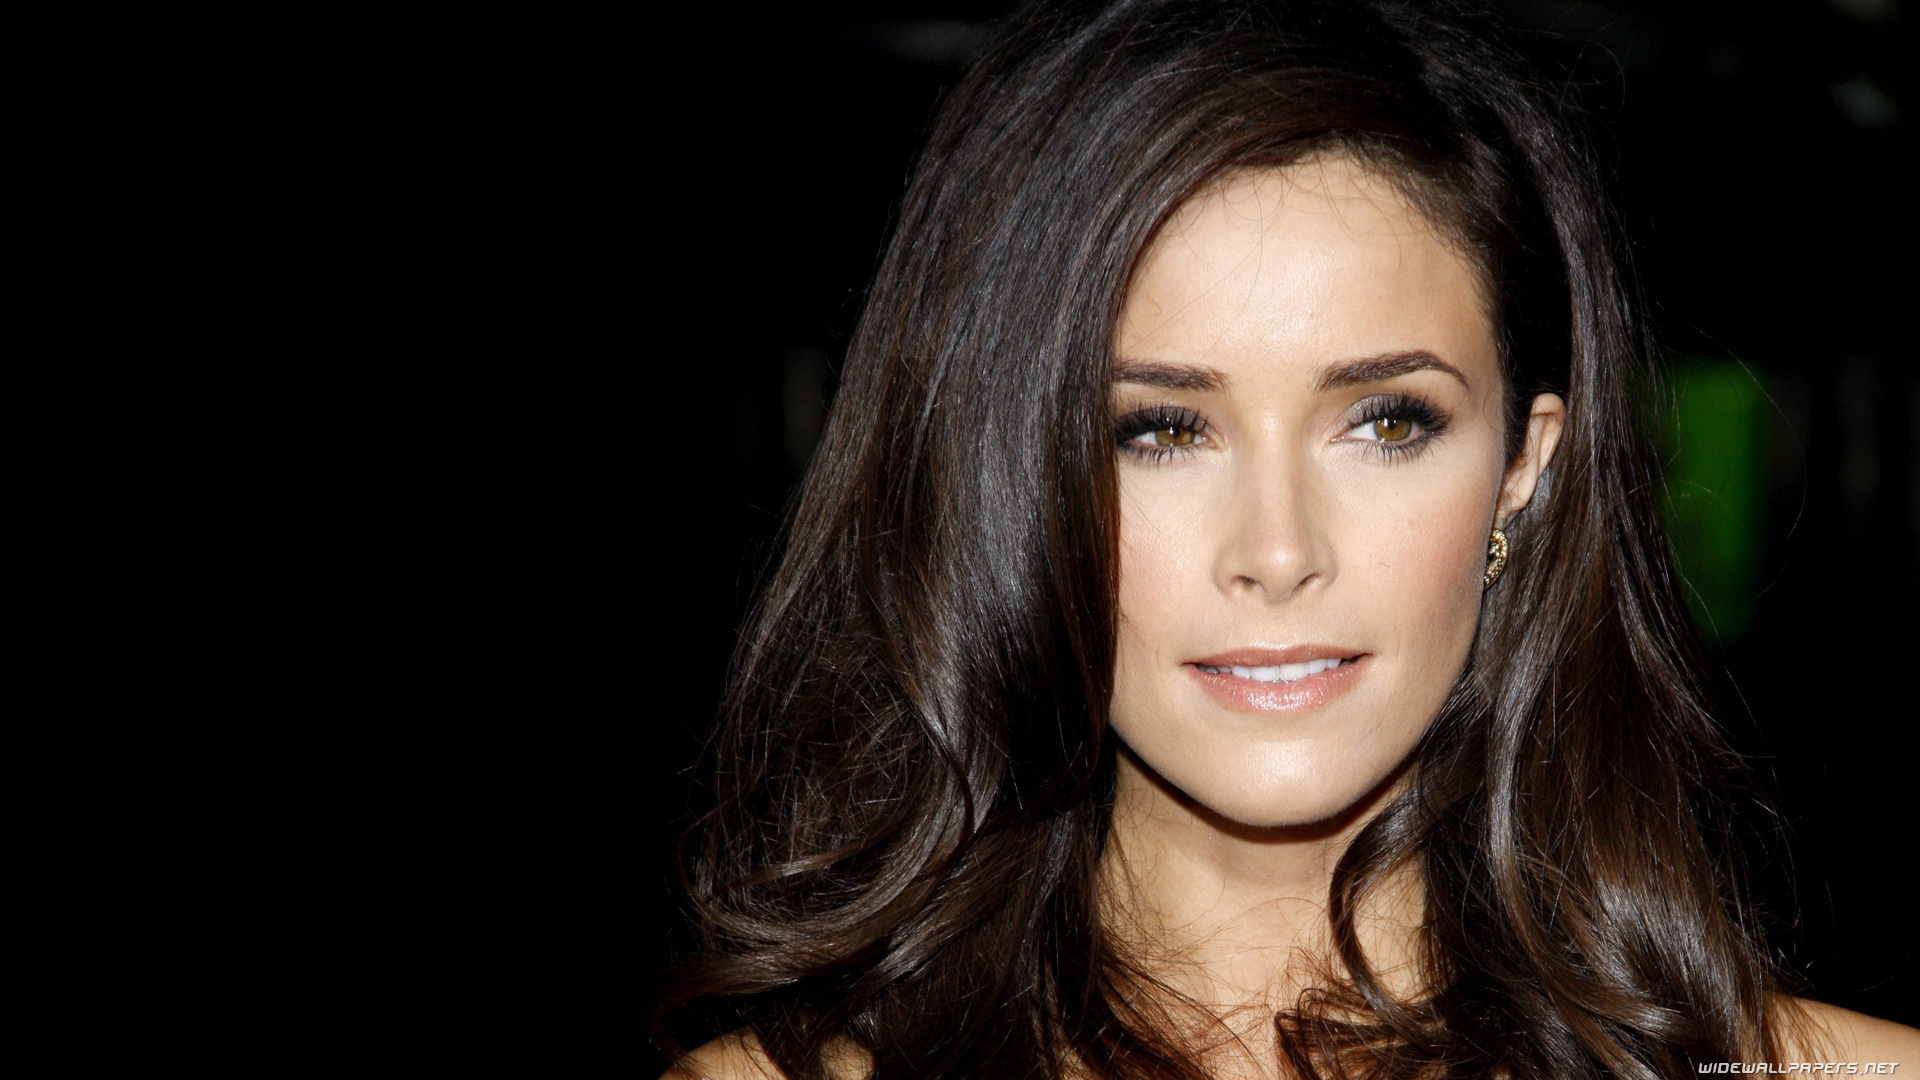 1920x1080 - Abigail Spencer Wallpapers 1